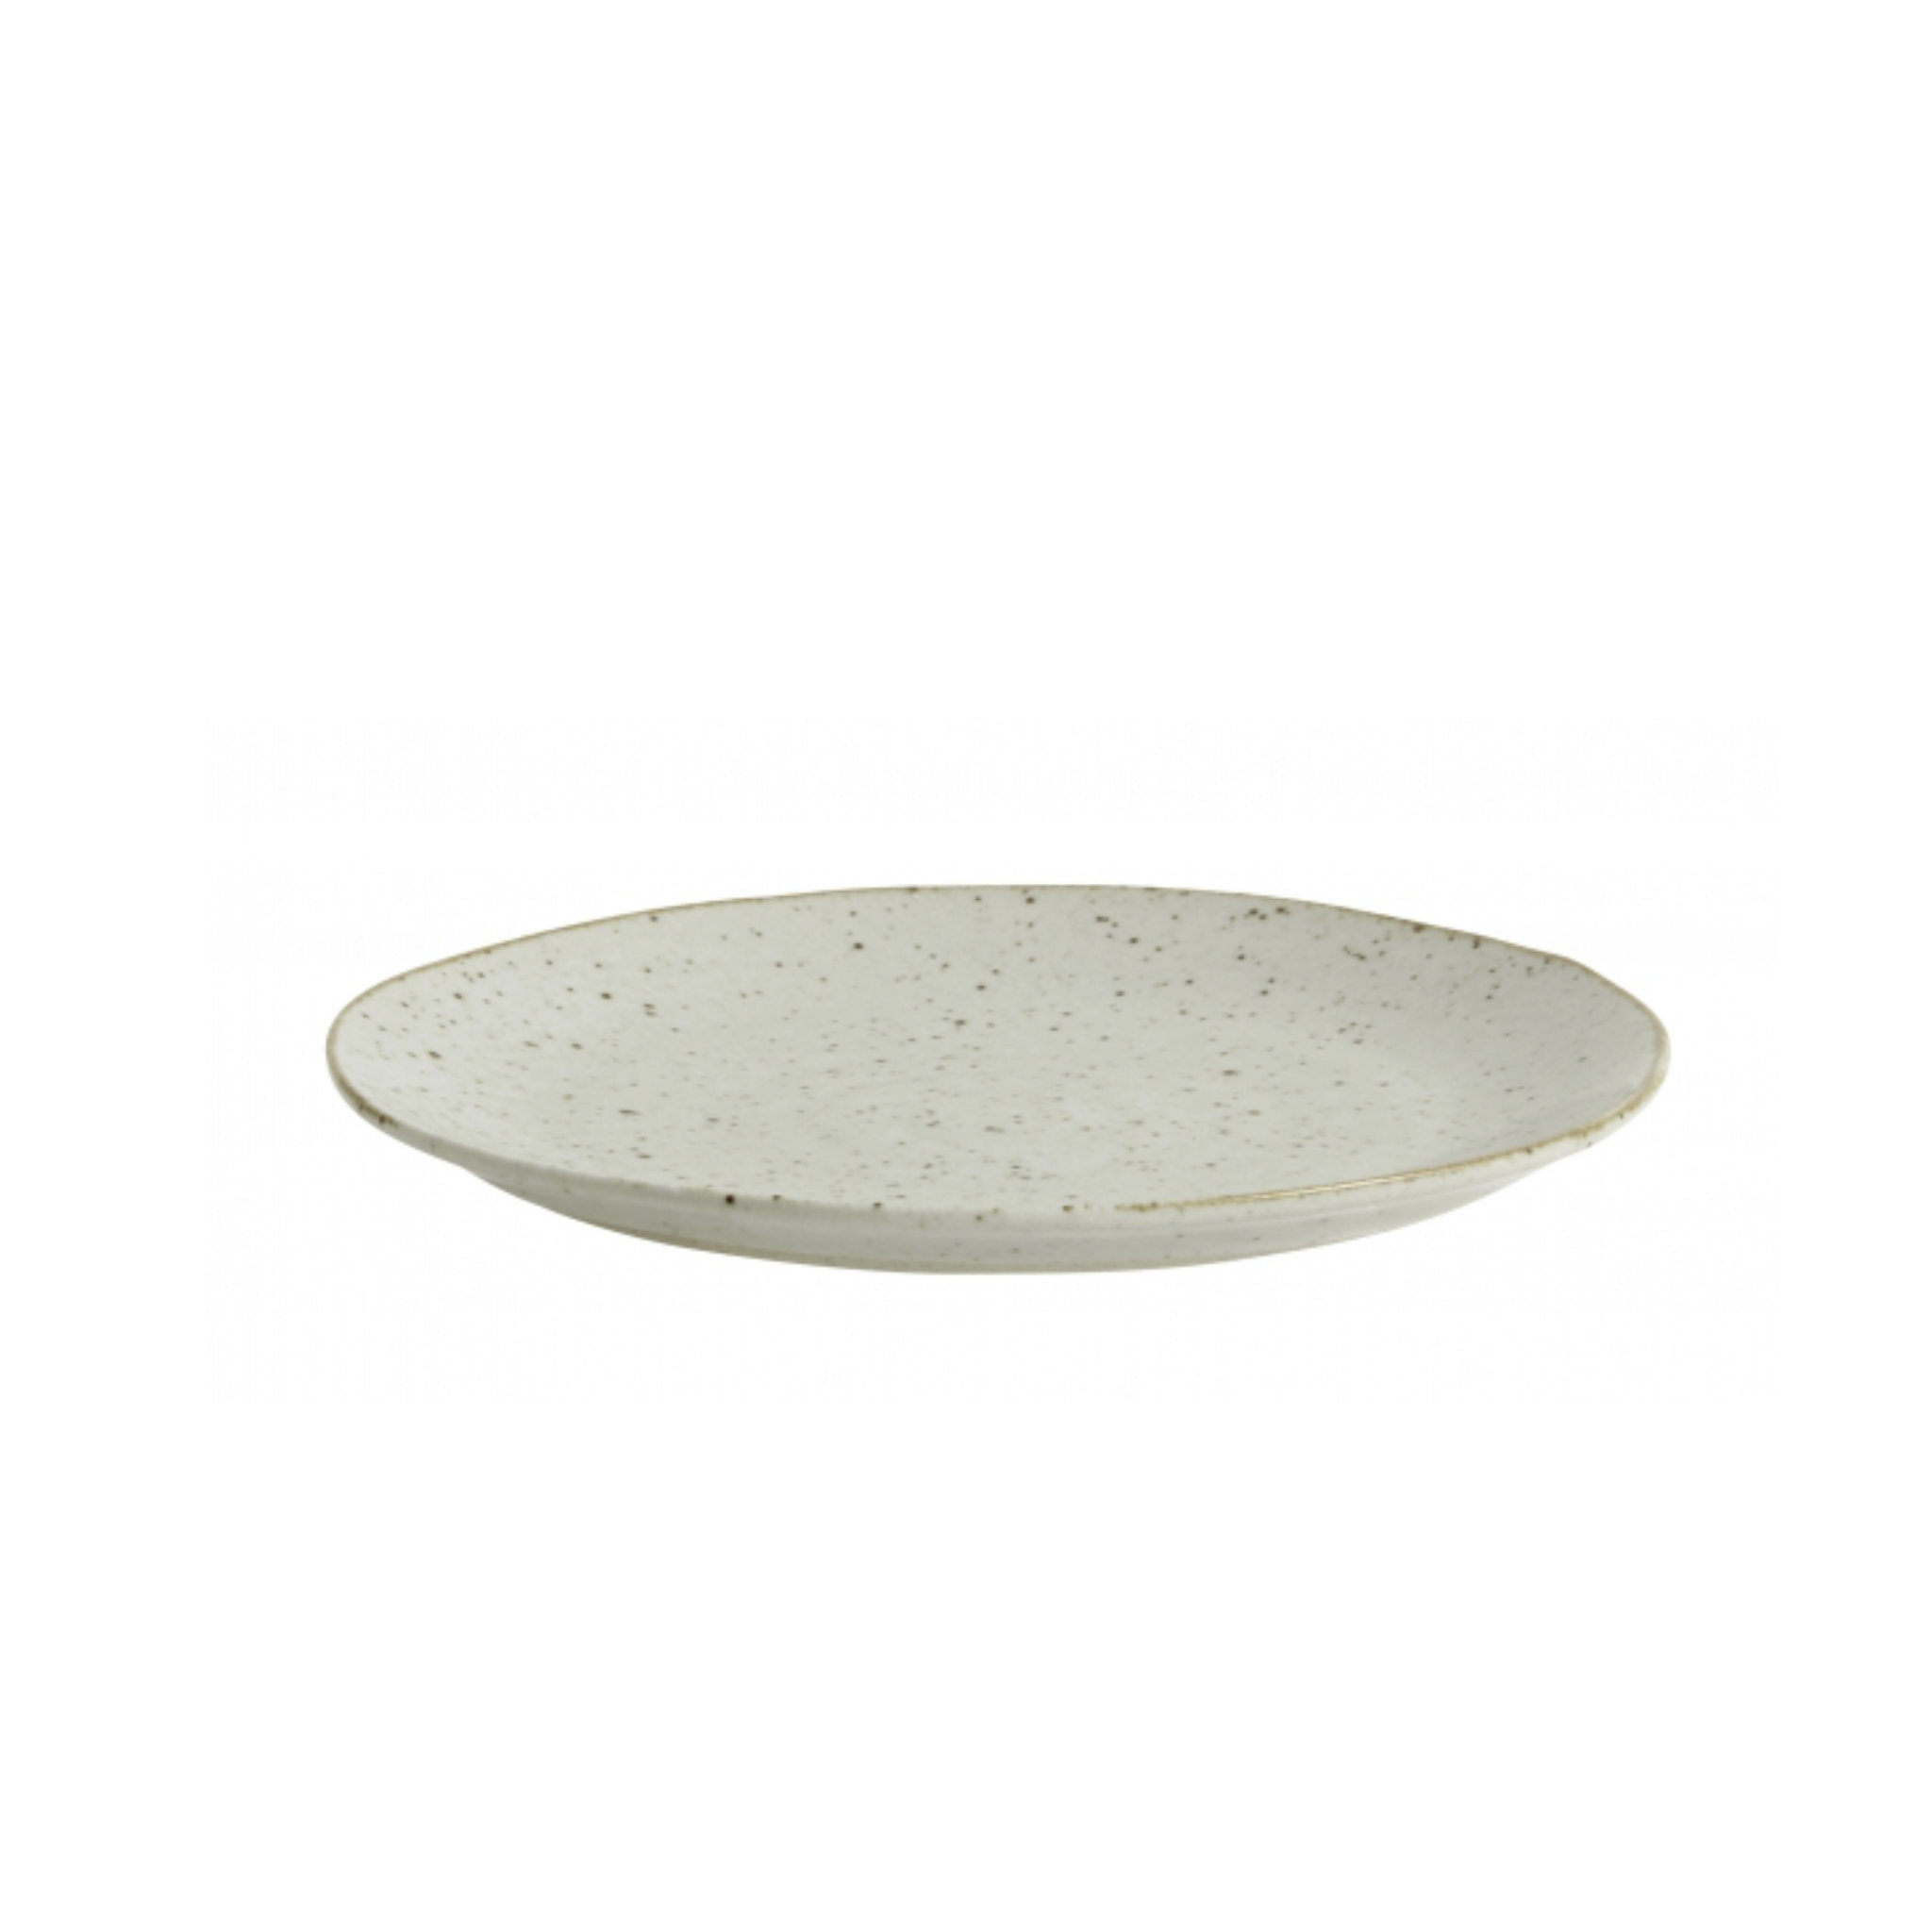 Nordal Grainy Cake Plate